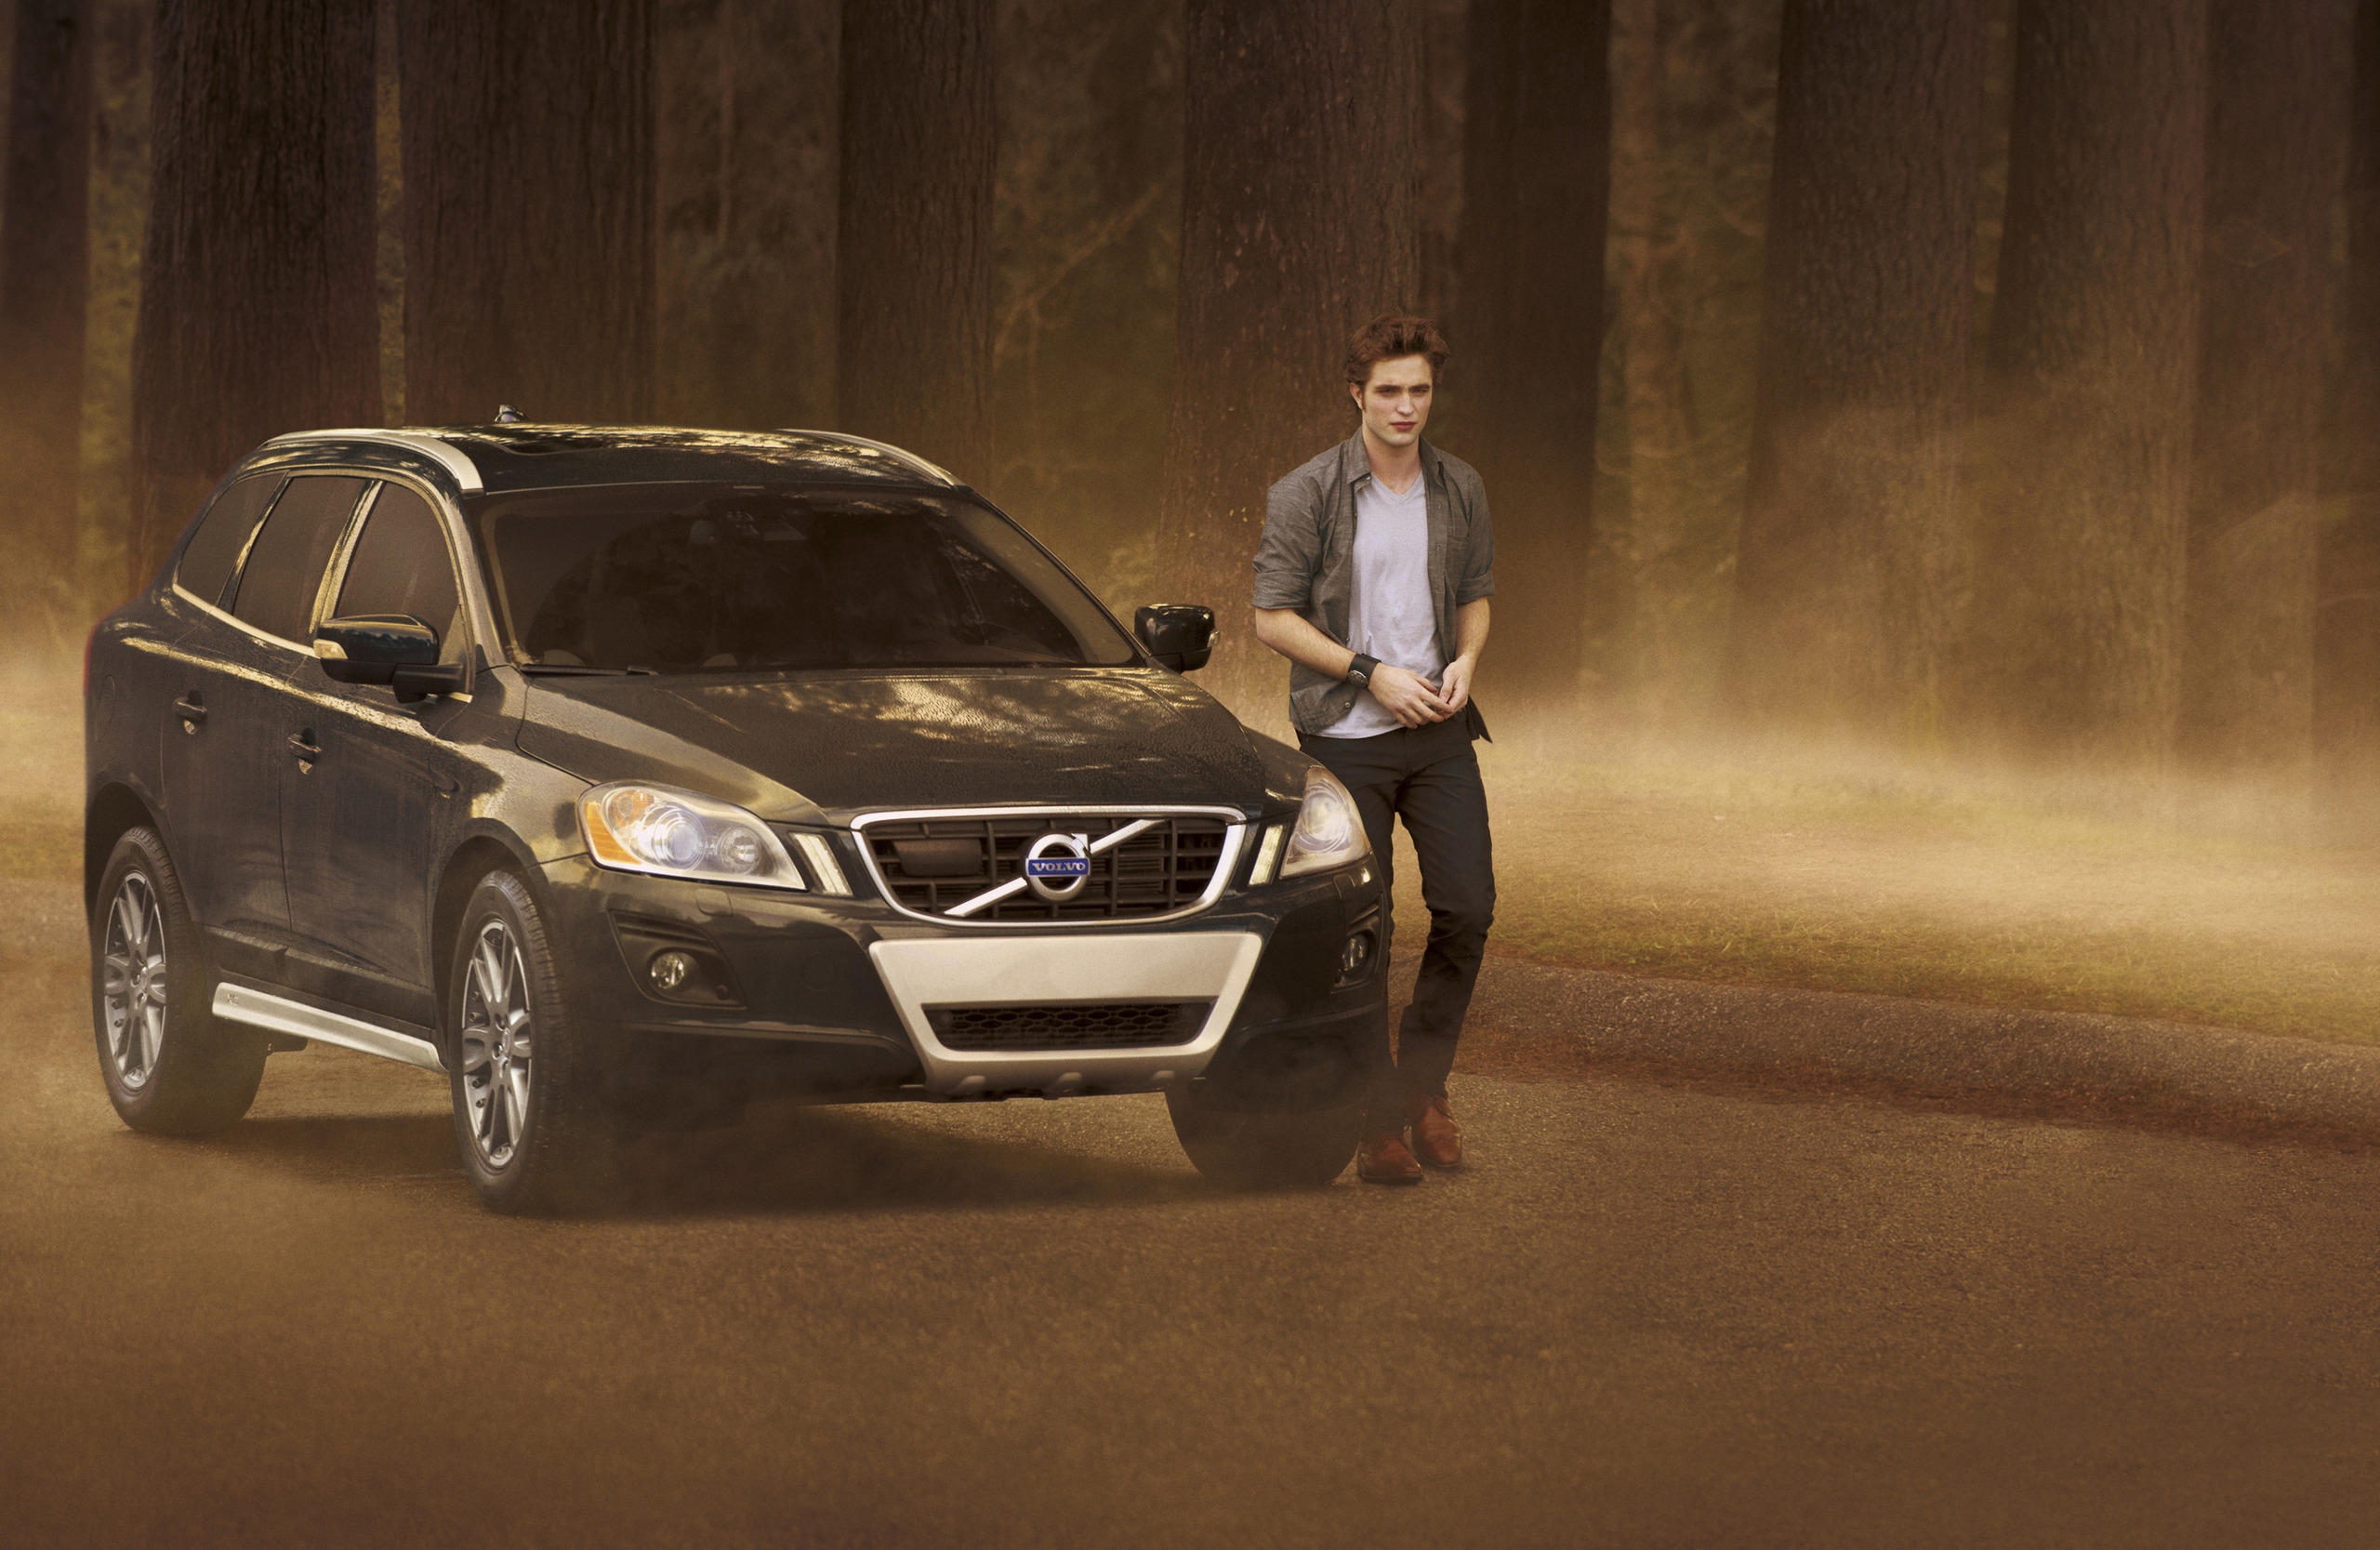 NEW HIGH QUALITY Robert Pattinson EDWARD From Volvo